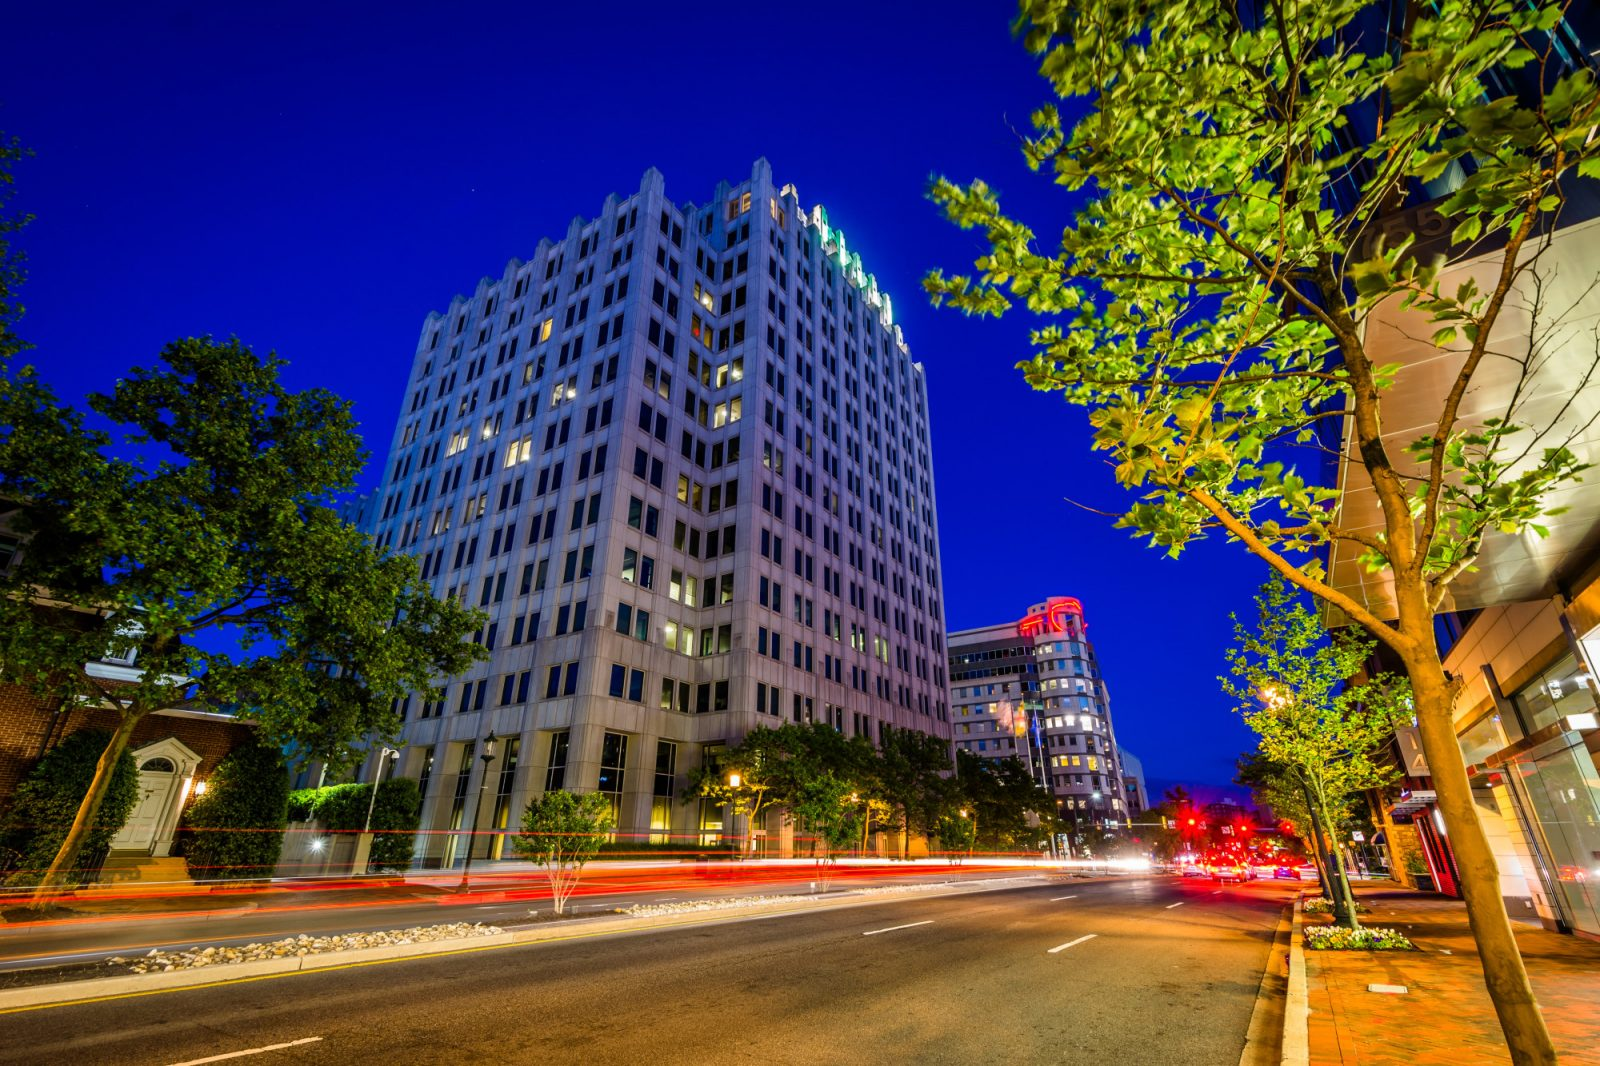 A picture of Bethesda, MD in the evening in an article that helps new residents discover all that Bethesda has to offer.